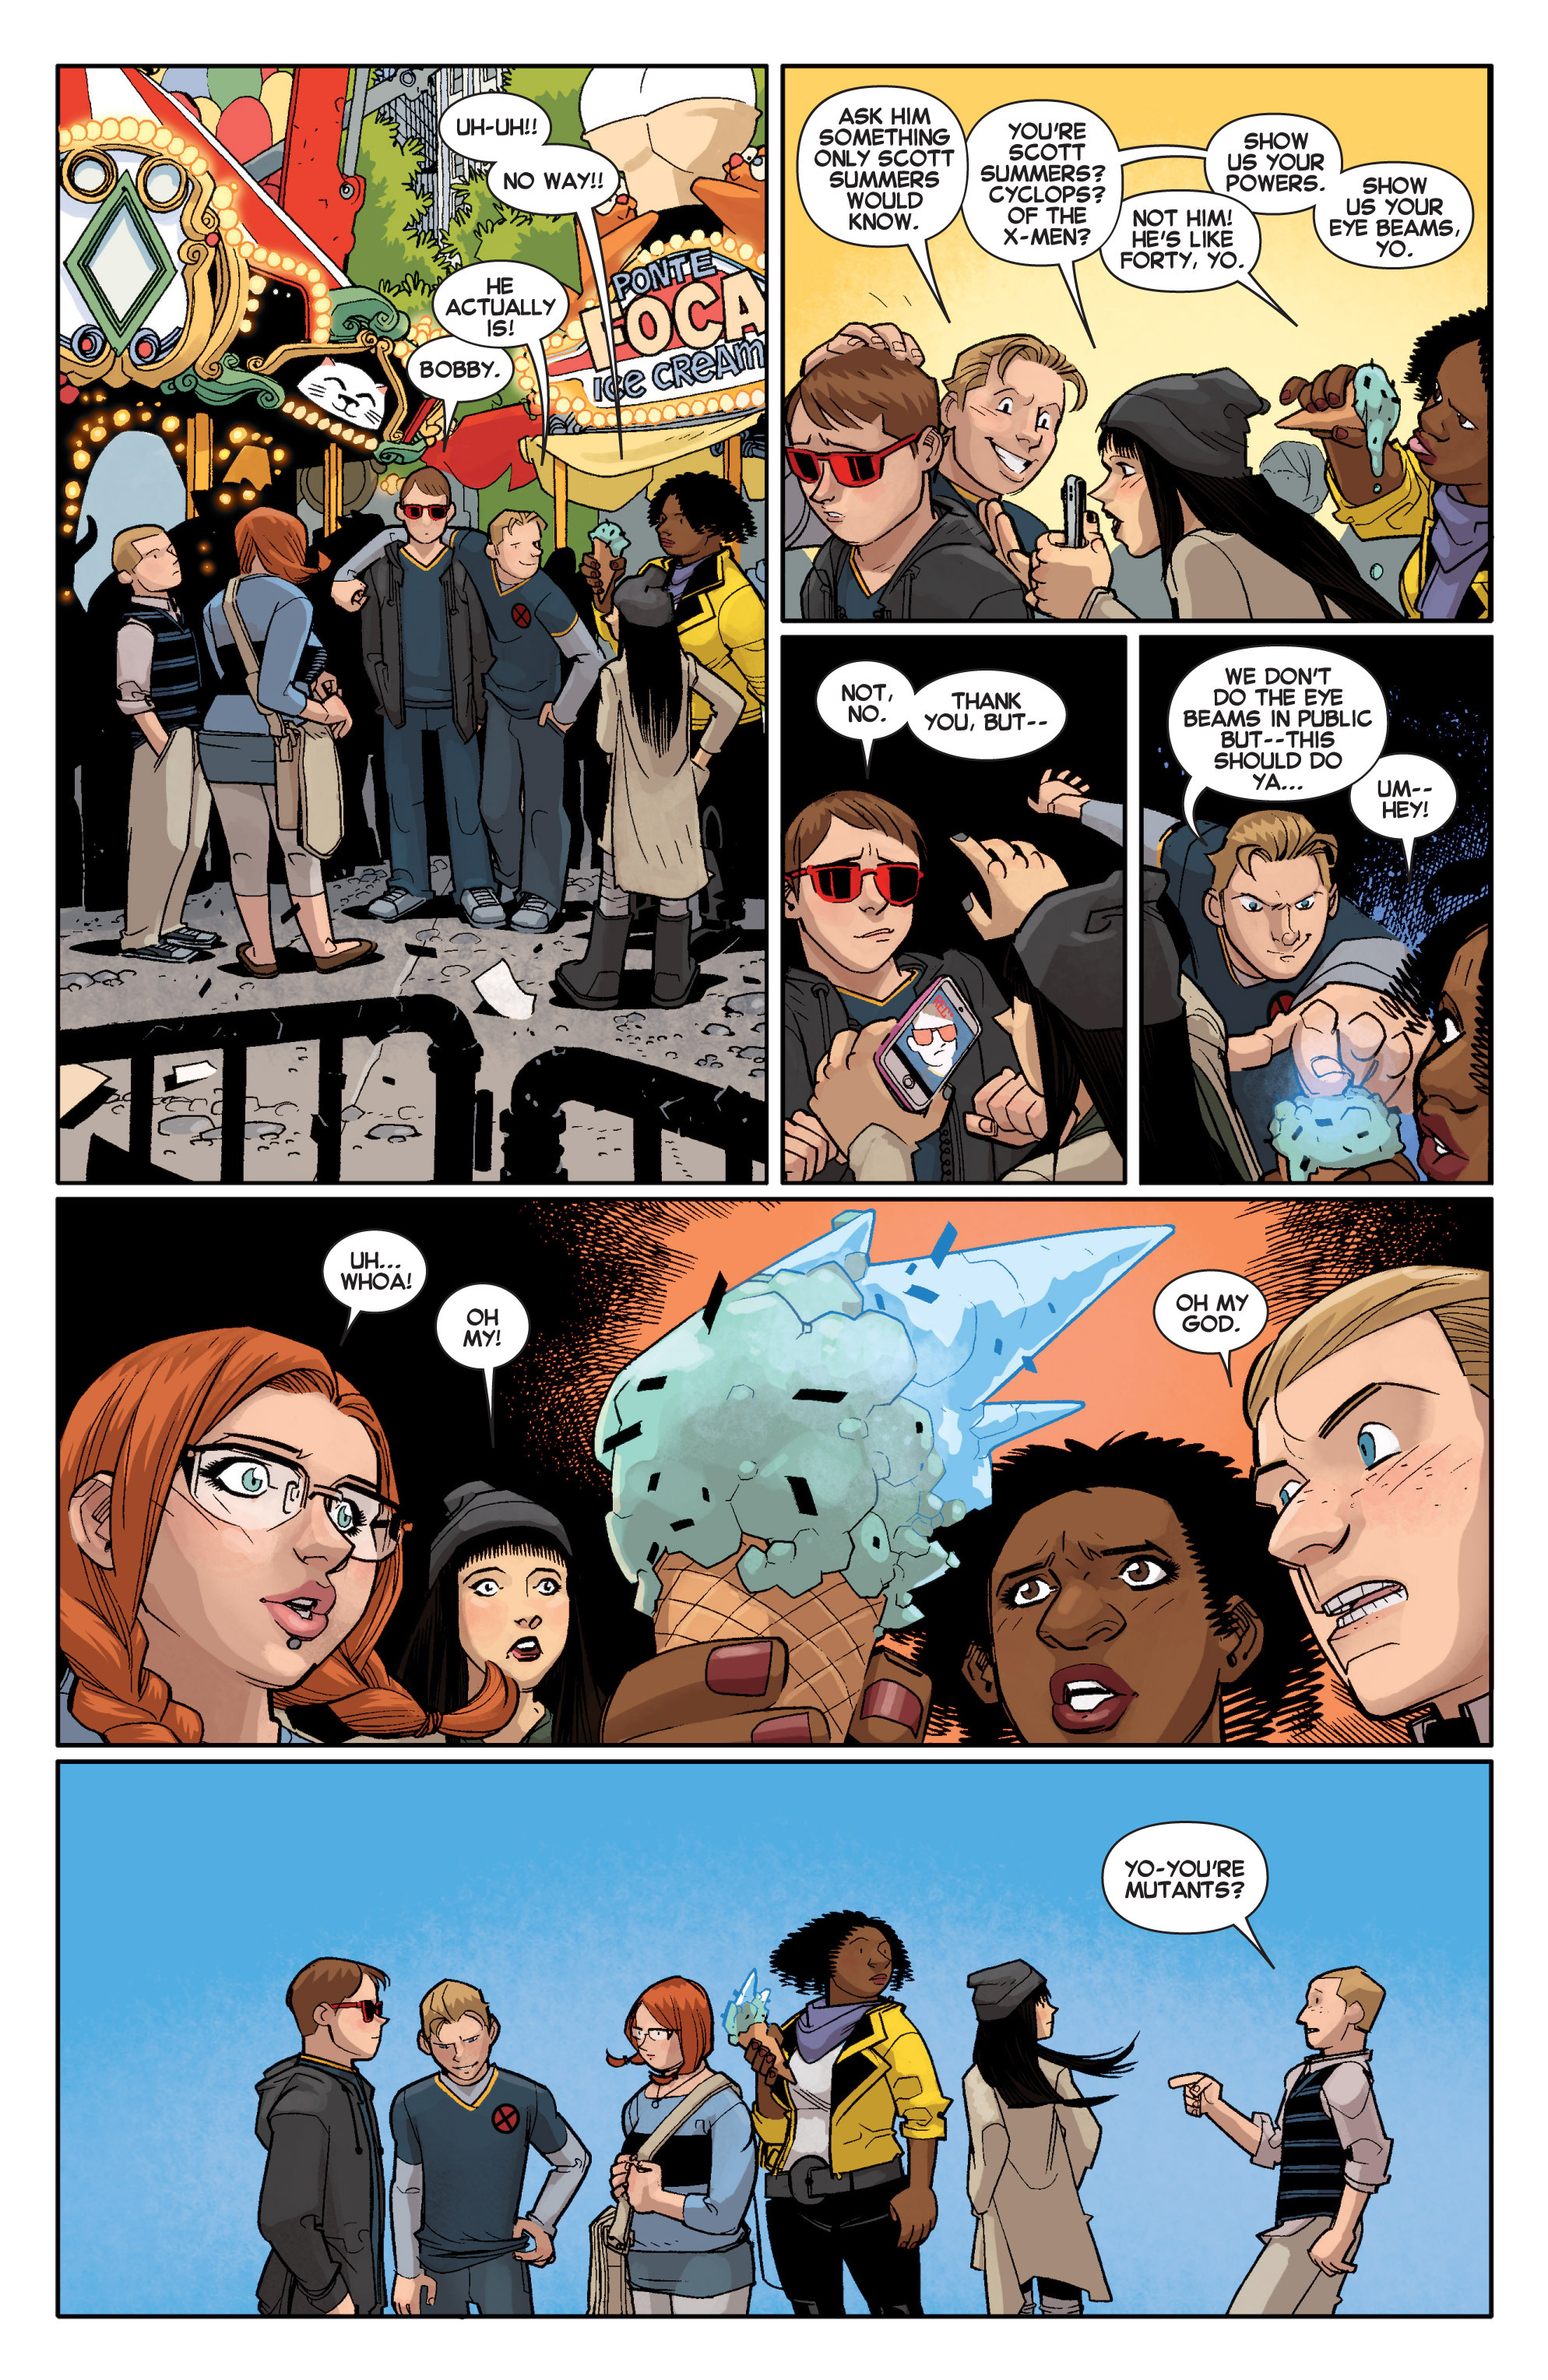 Read online All-New X-Men (2013) comic -  Issue # _Special - Out Of Their Depth - 100